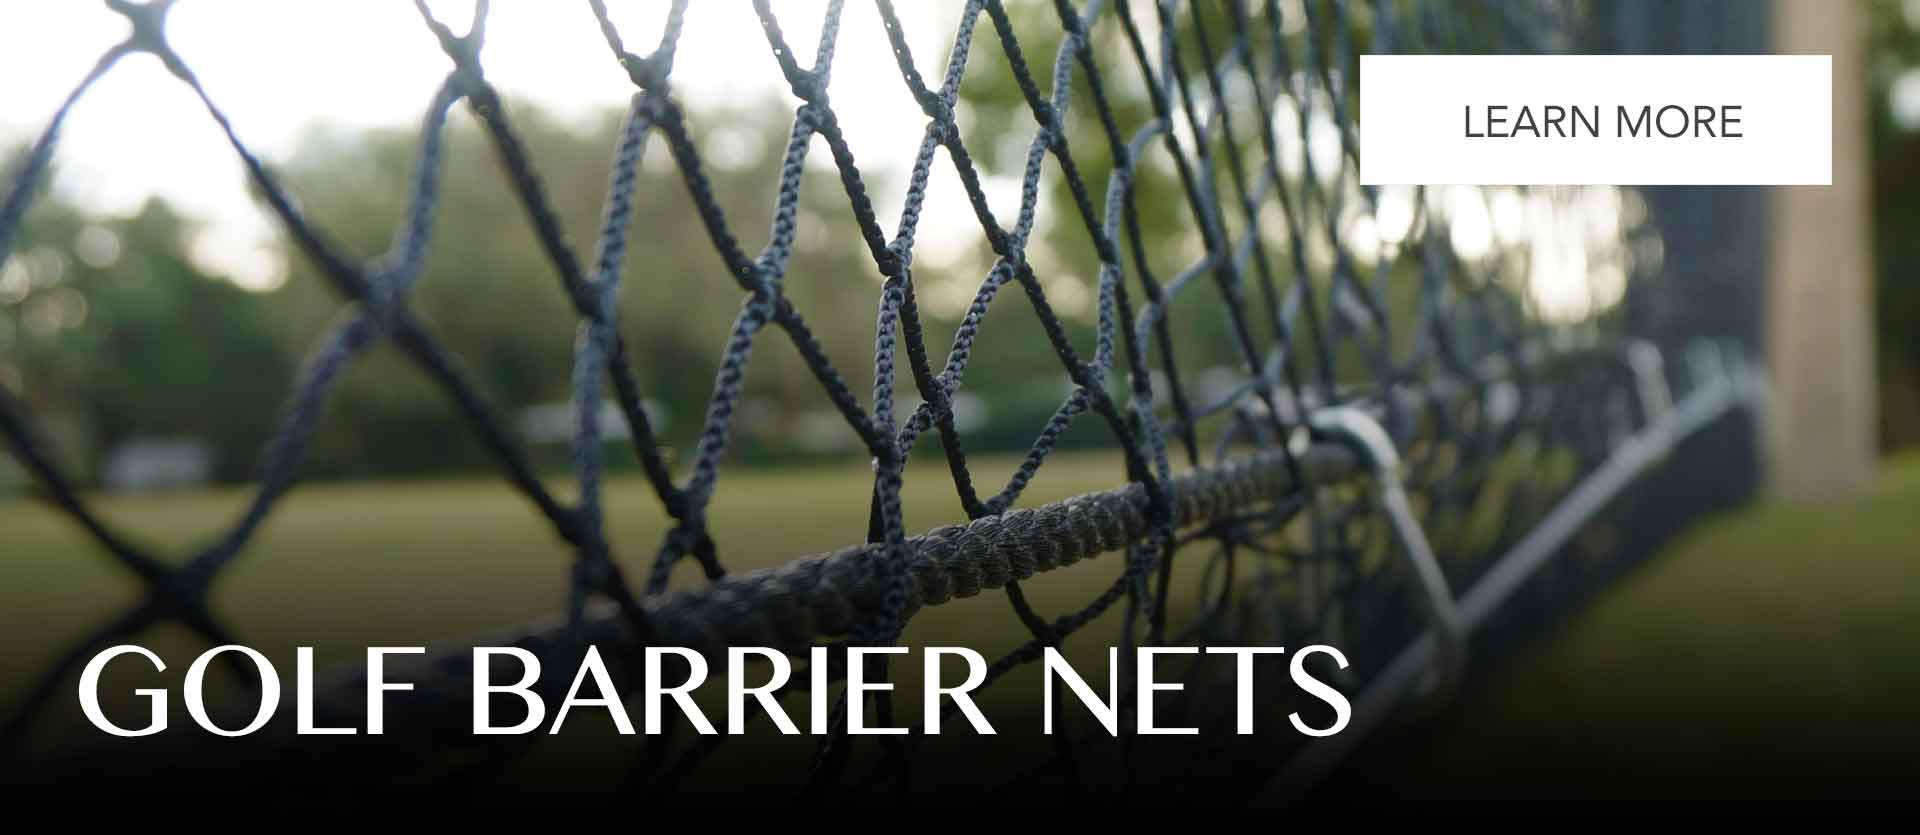 Buy professional golf range netting, made to order for your golf course, school or home.